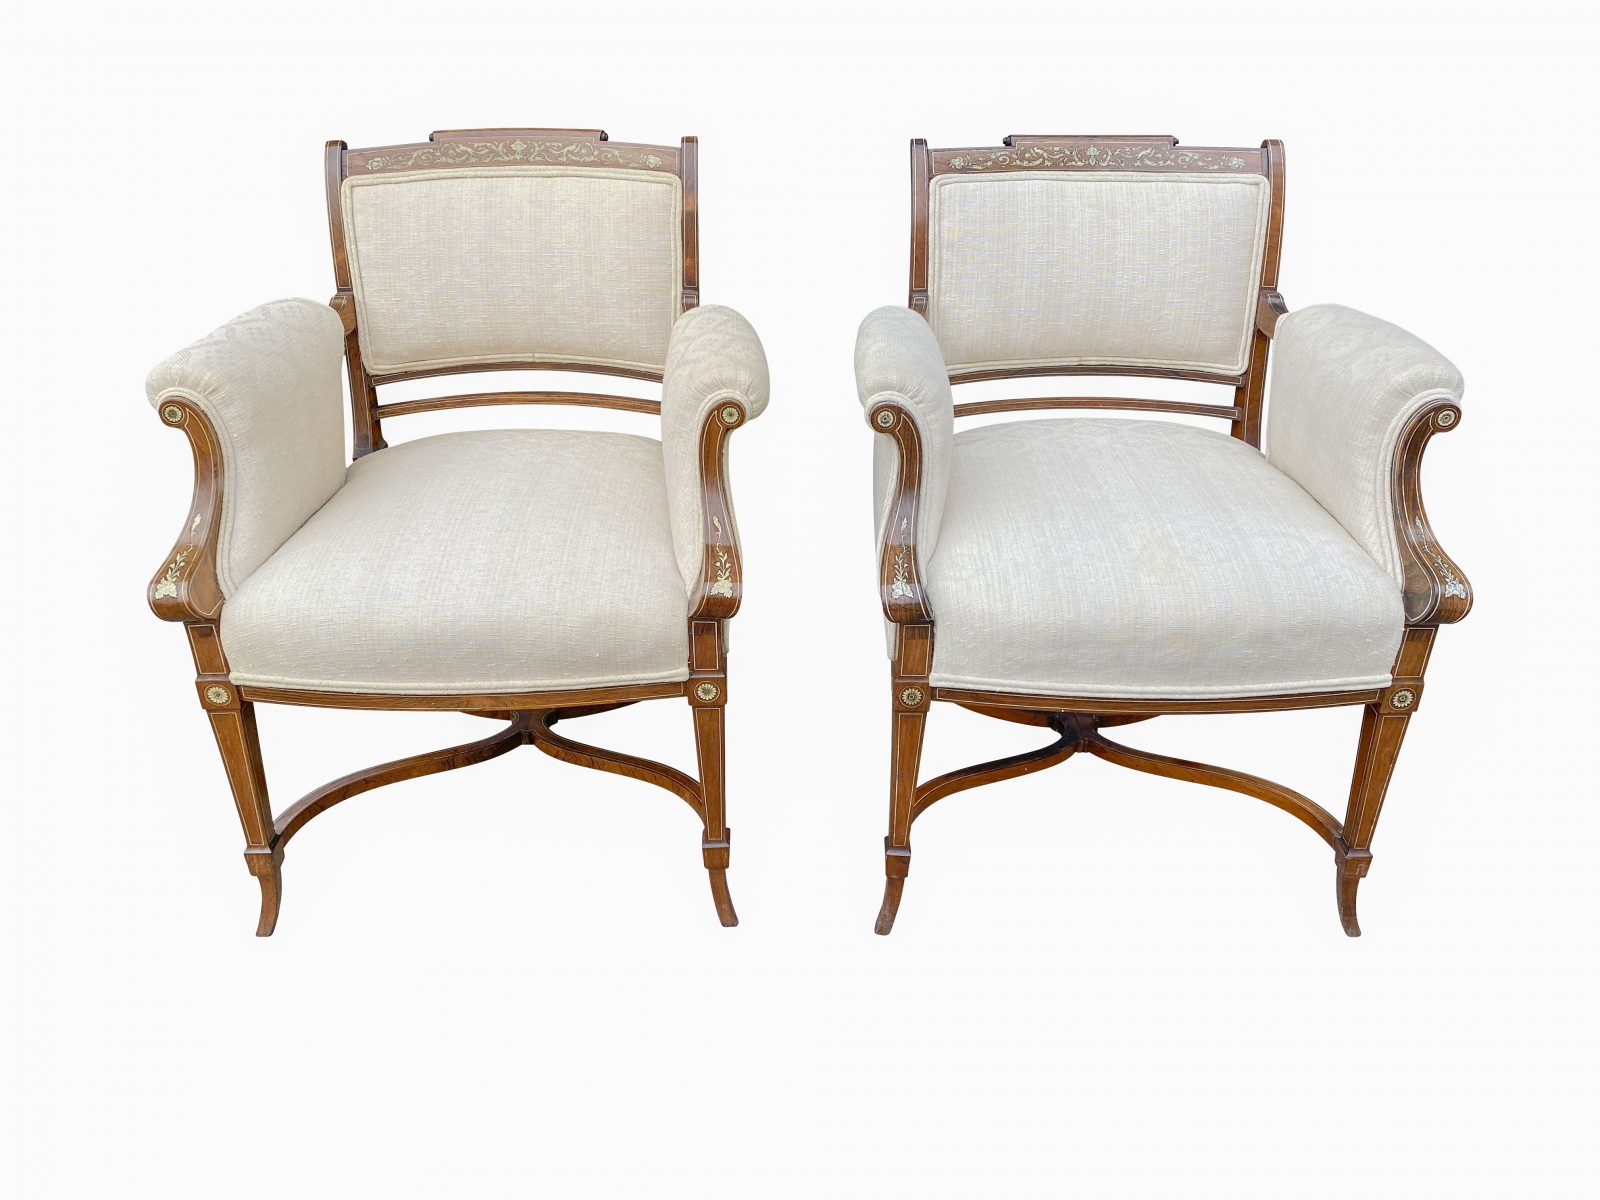 Pair of Anglo-Japanese Rosewood and Inlaid Armchairs, Collinson & Lock